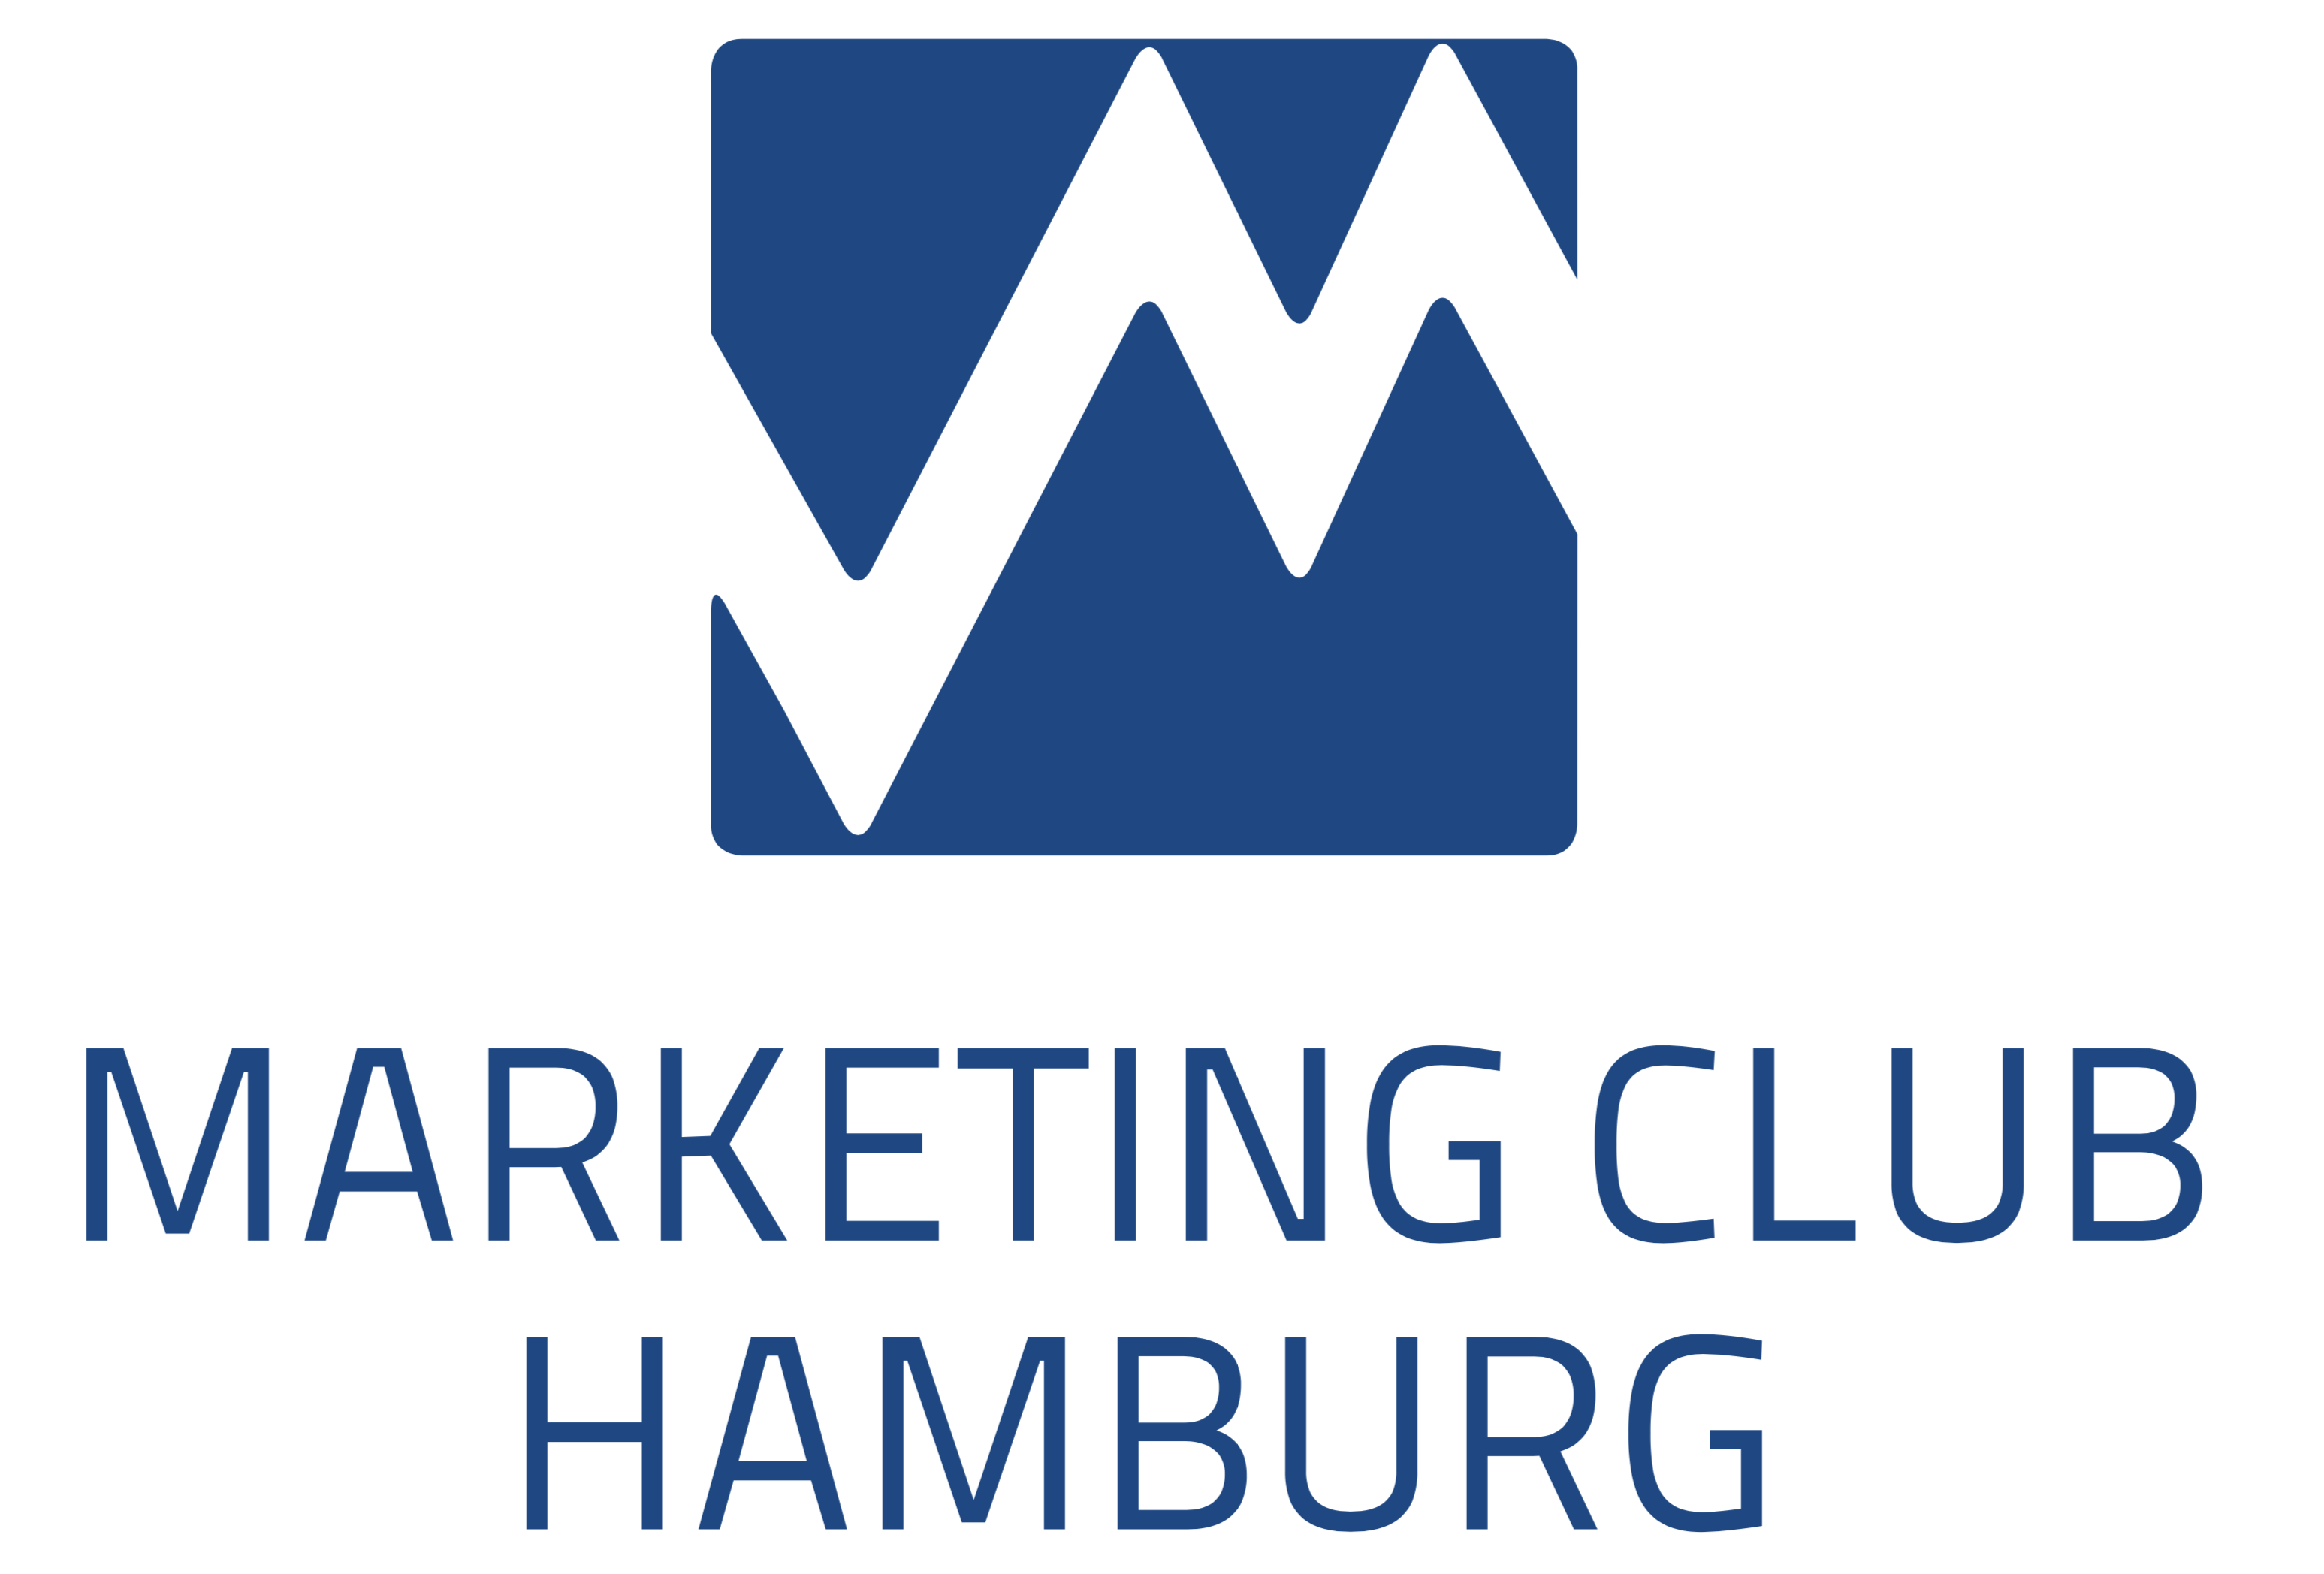 Marketingclub Hamburg e.V.